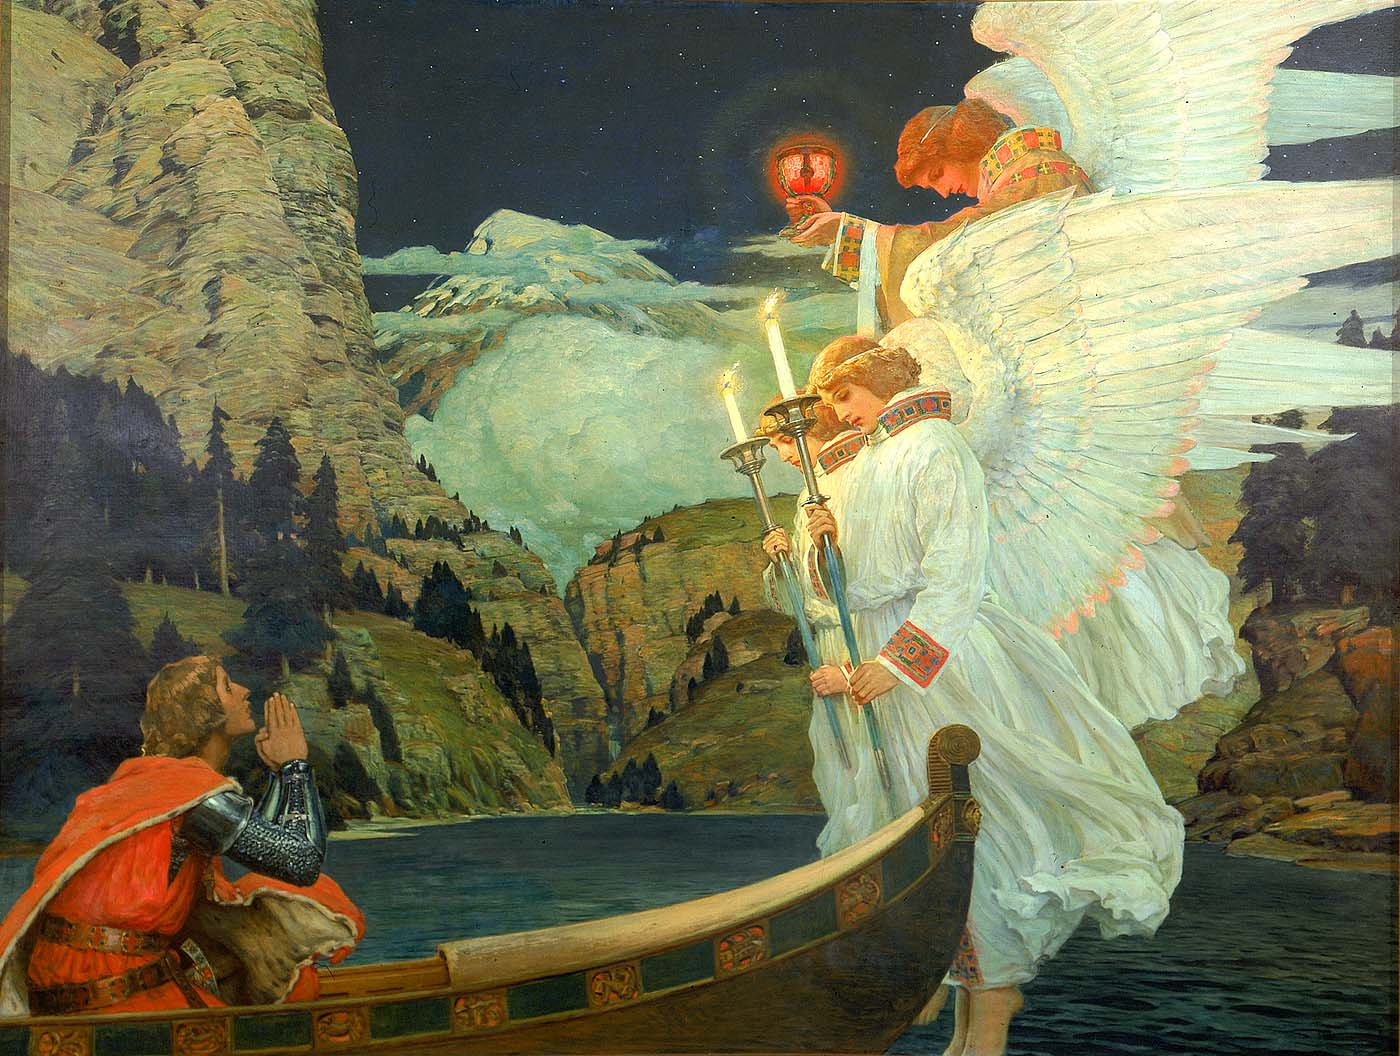 Frederick J. Waugh - The Knight of the Holy Grail, 1912